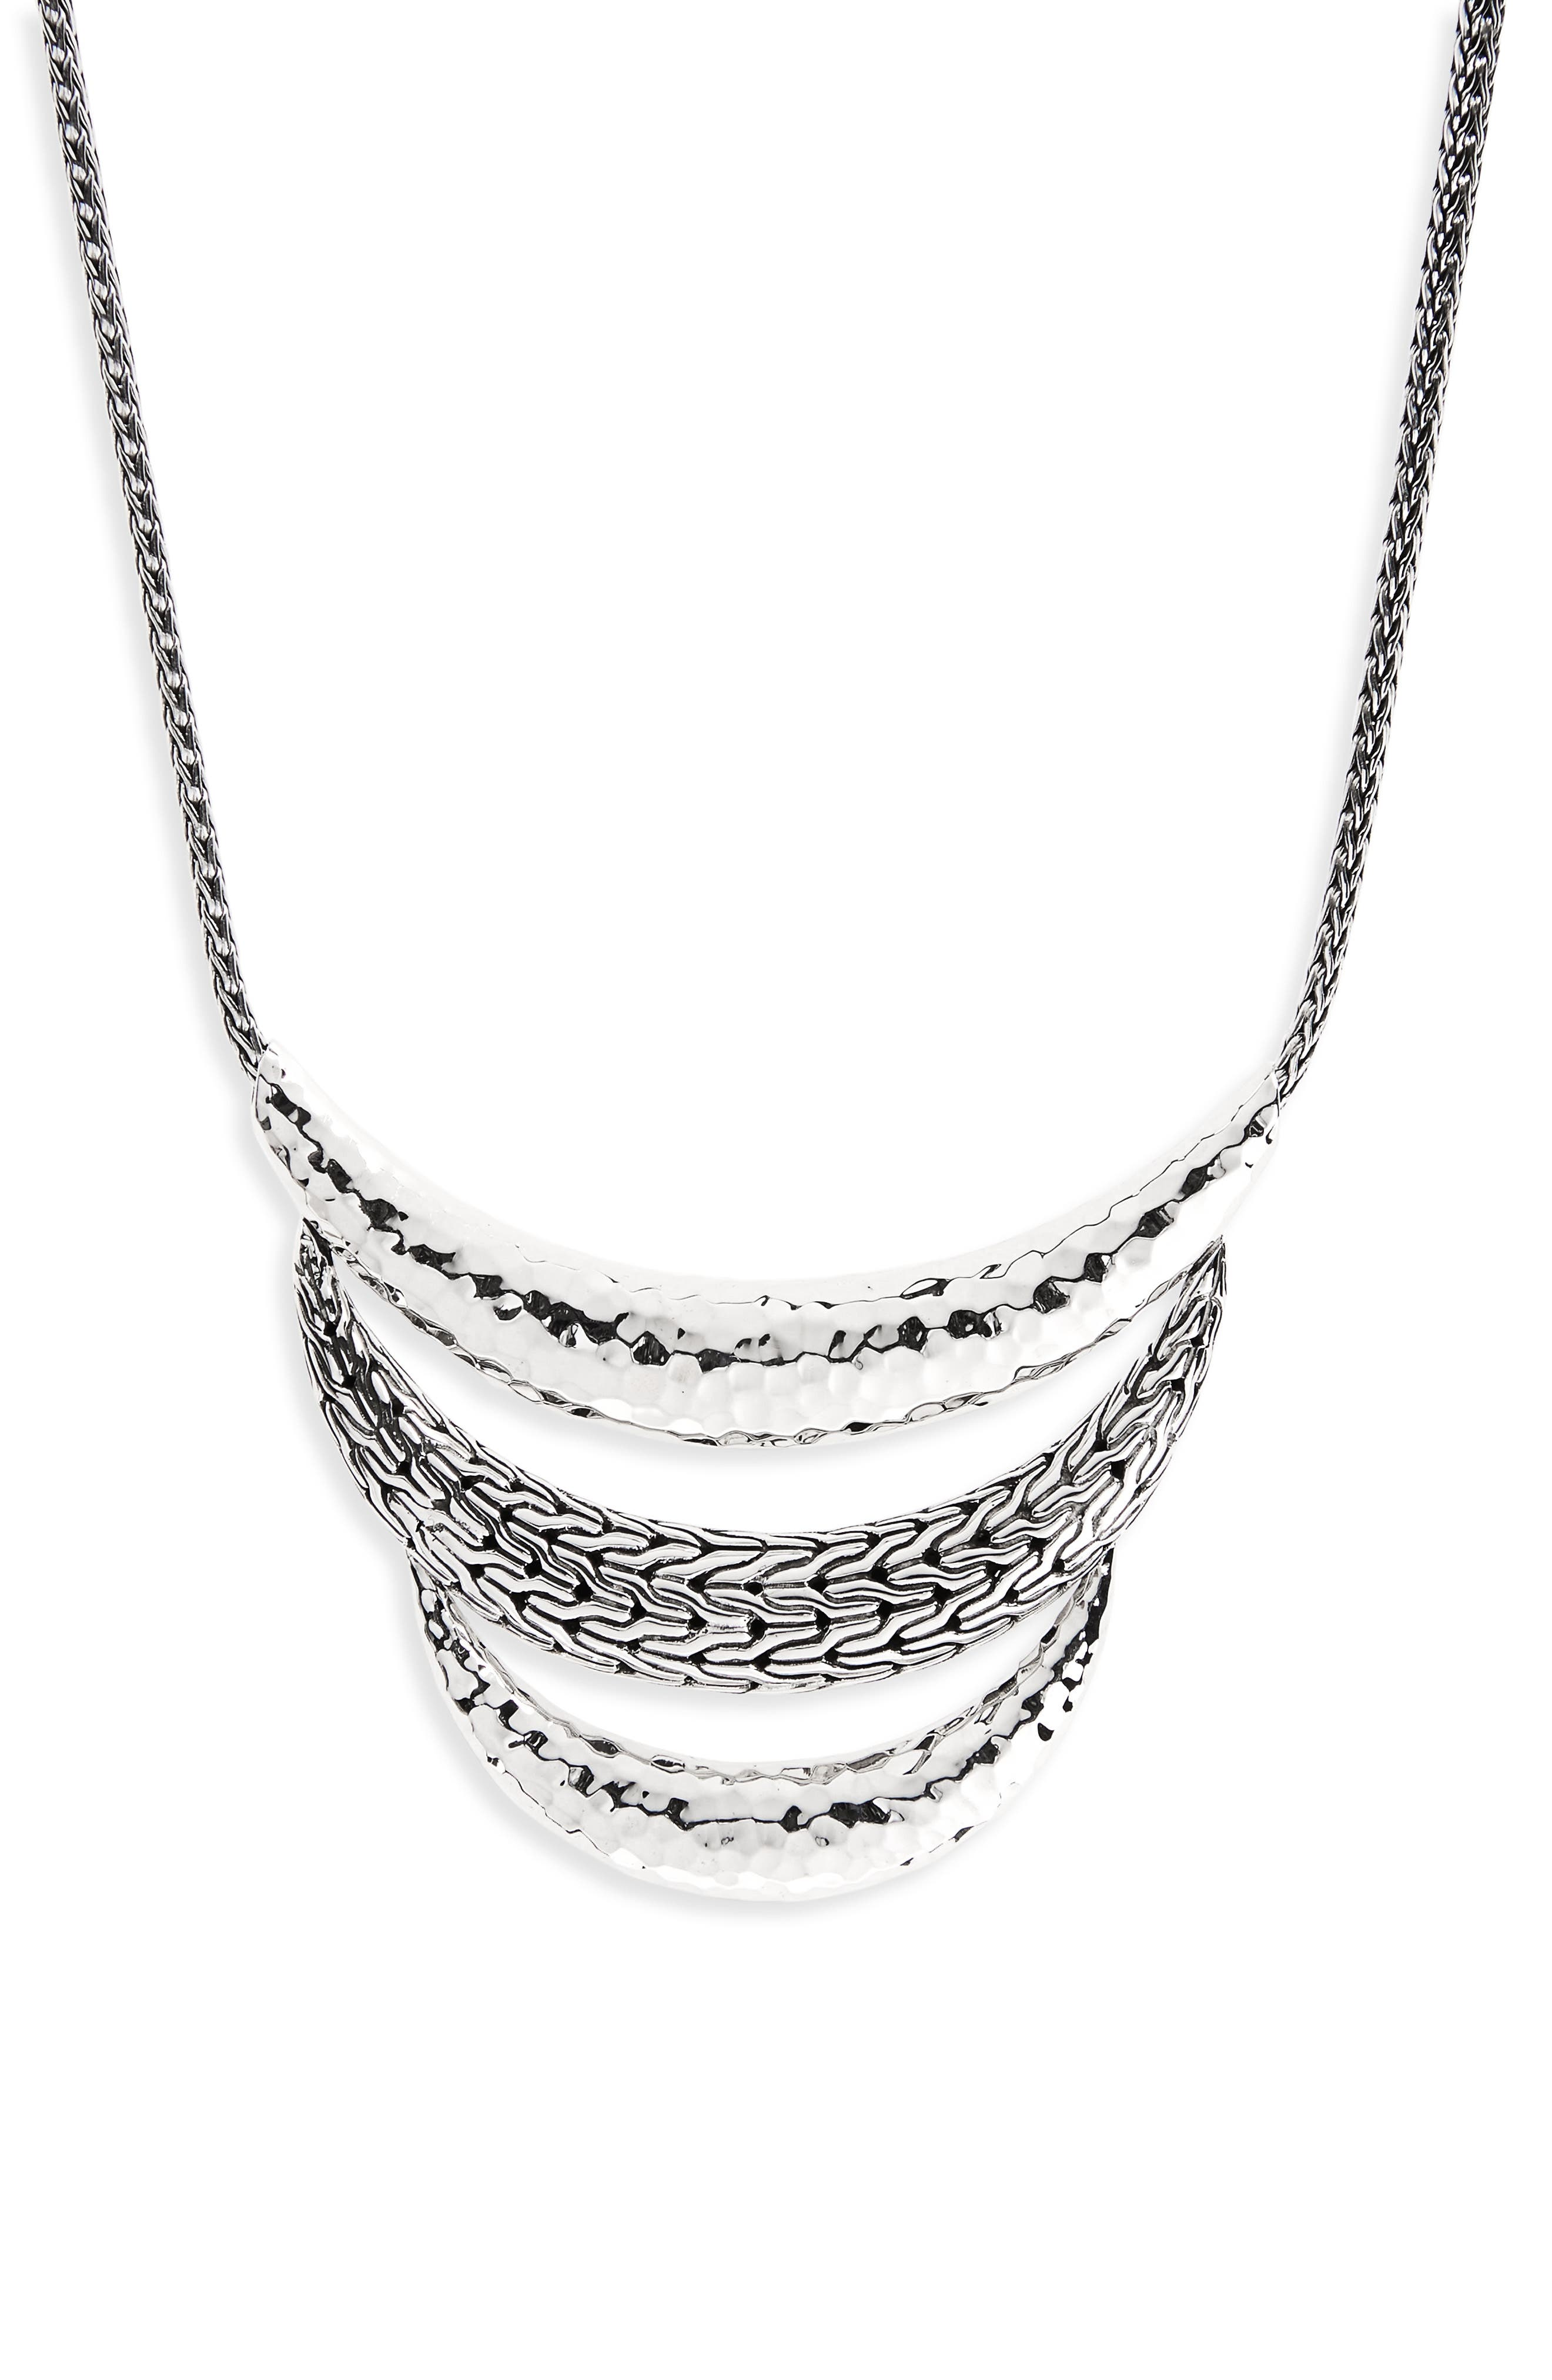 Classic Chain Hammered Silver Necklace,                             Main thumbnail 1, color,                             040